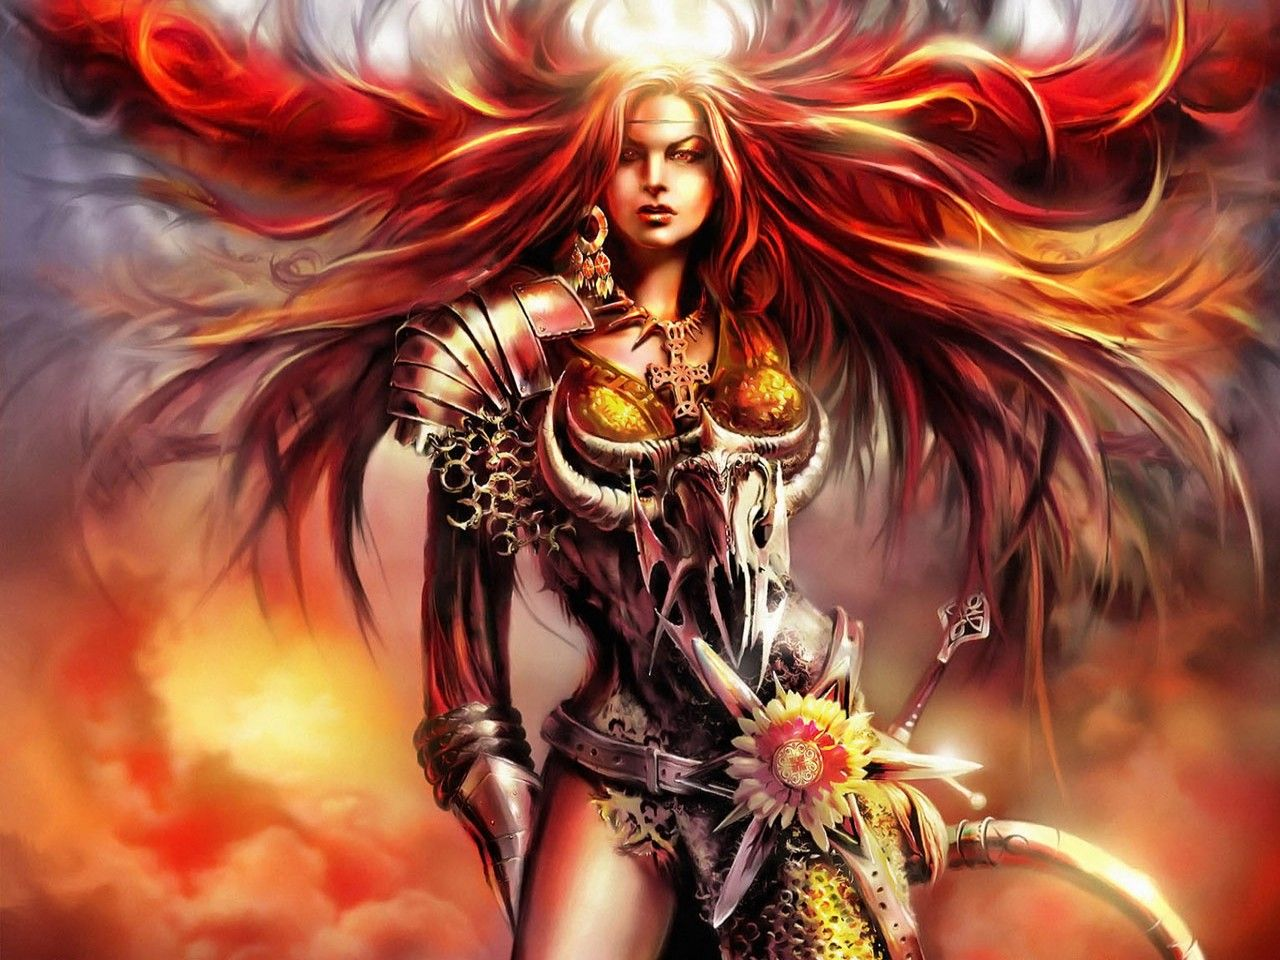 HD Fantasy Woman Wallpapers 1600x1200 Wallpapers 1280x960